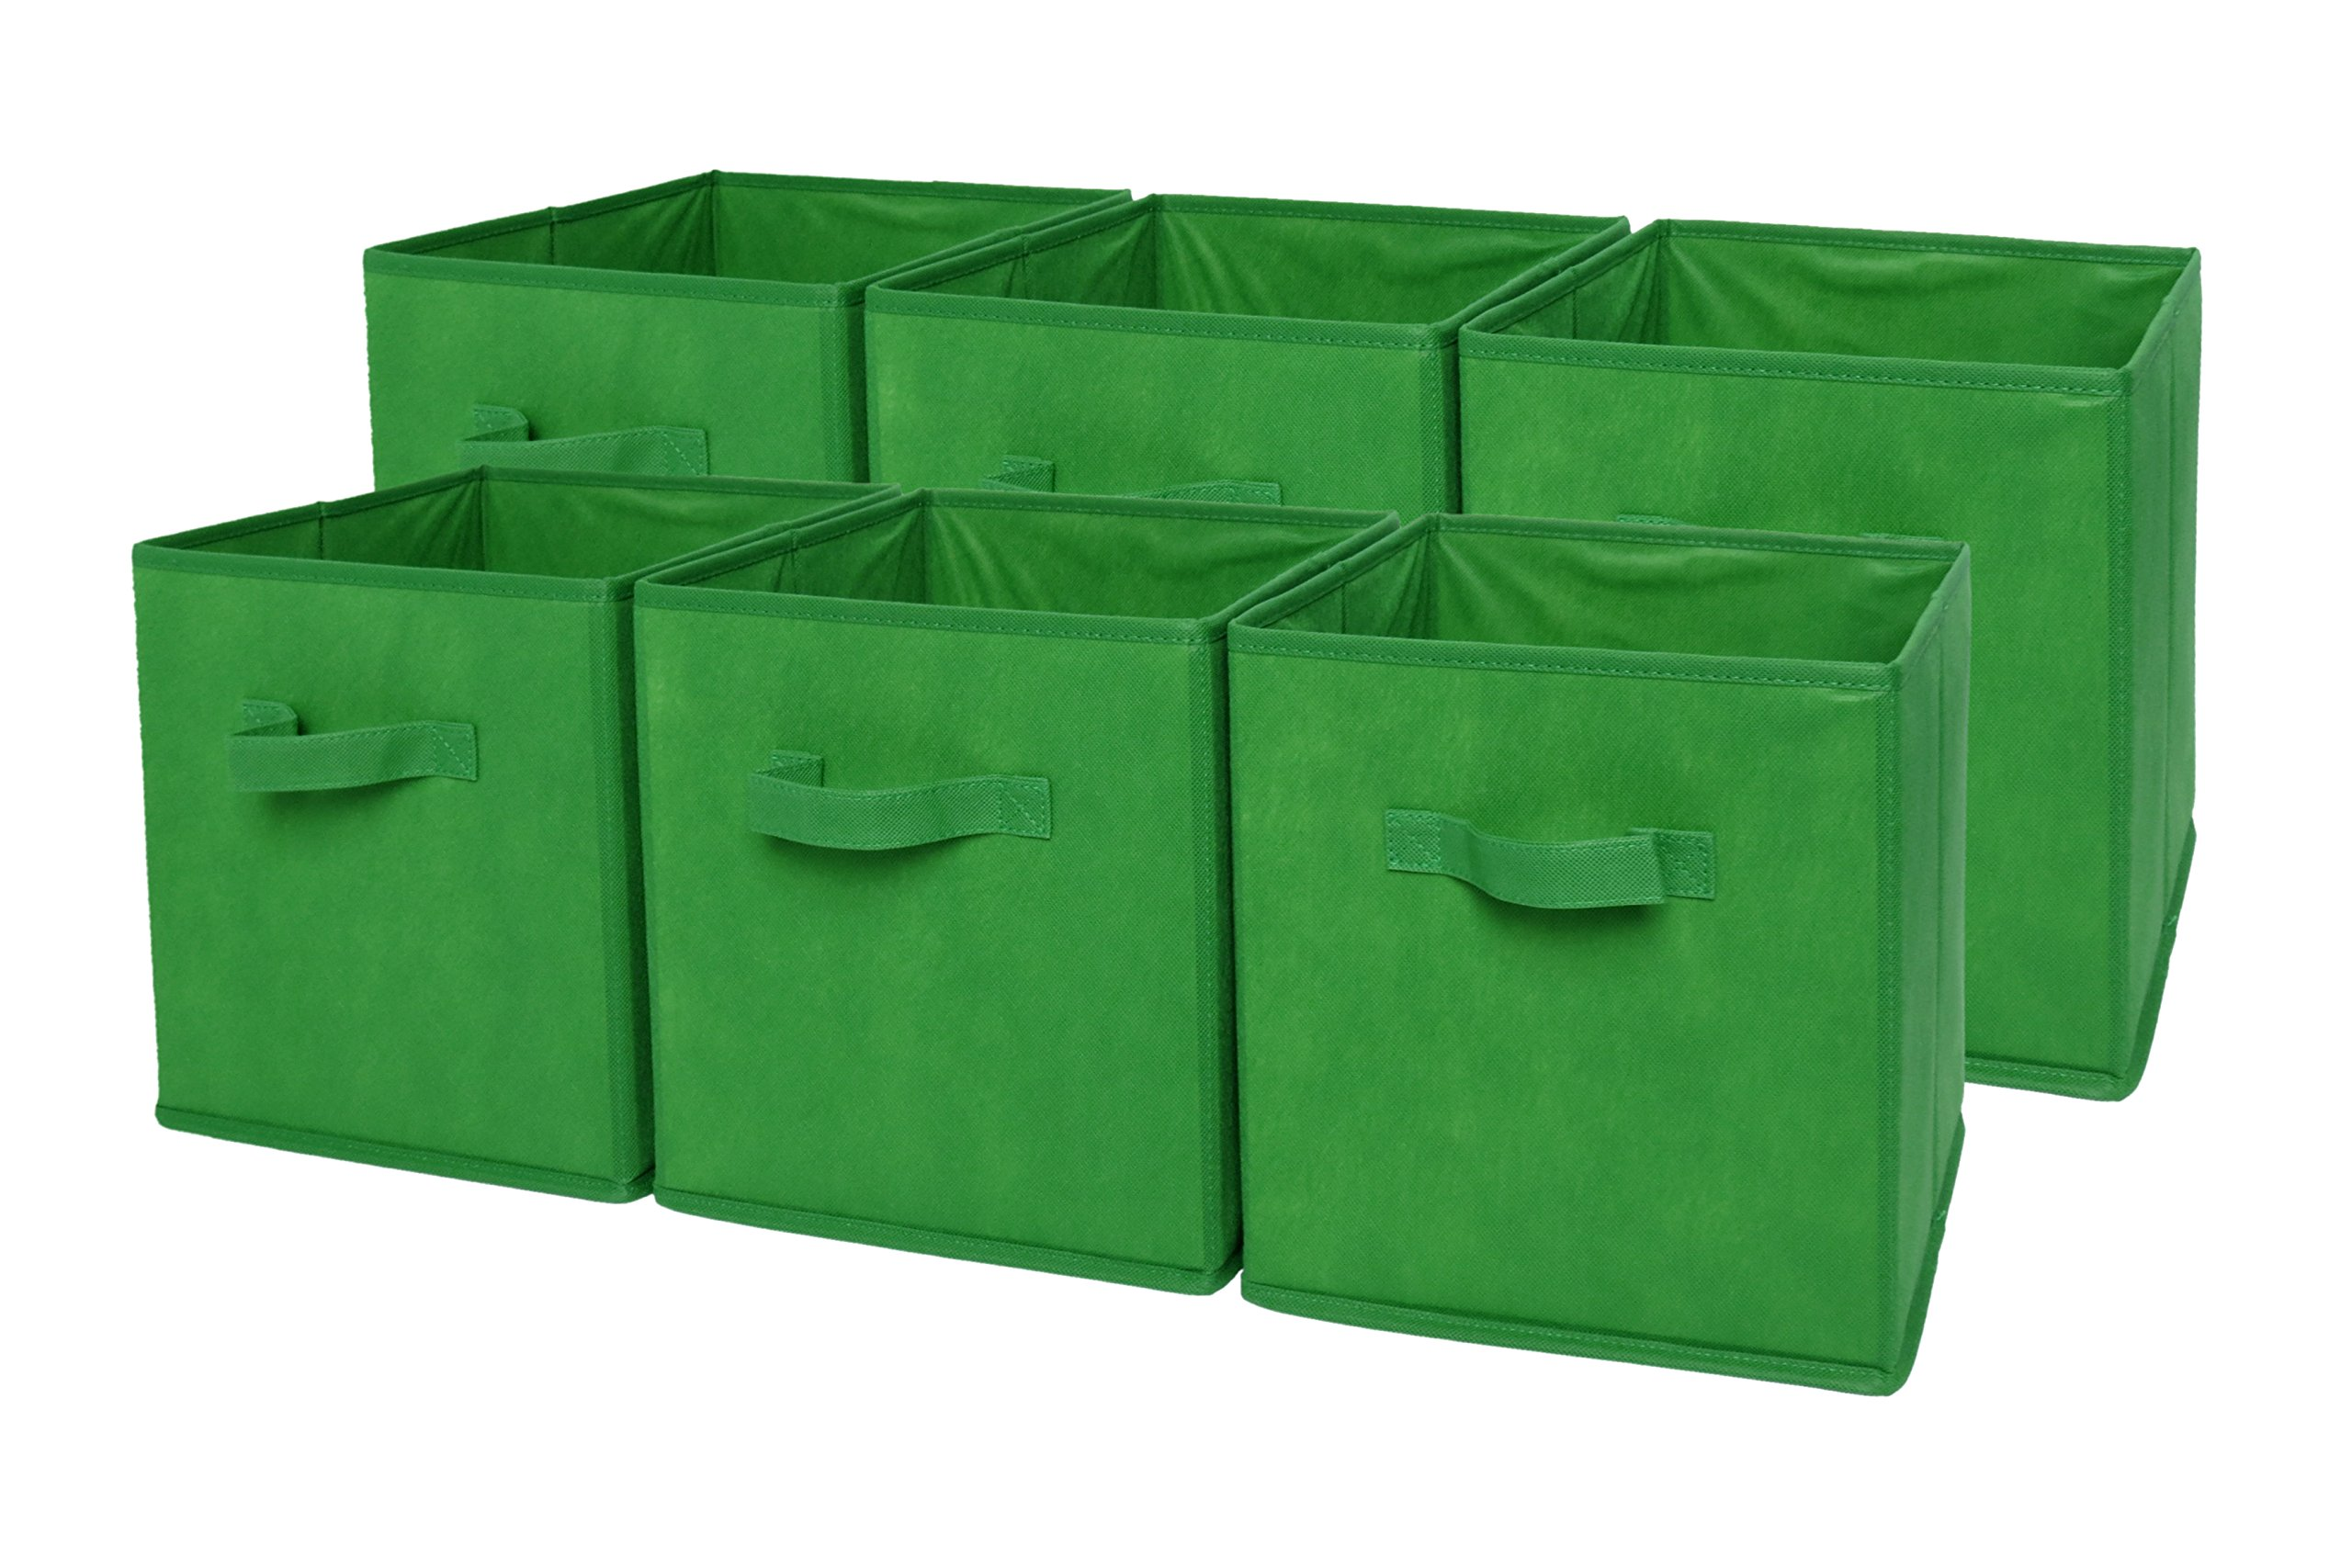 SodyneeFoldable Cloth Storage Cube Basket Bins Organizer Containers Drawers, 6 Pack, Green